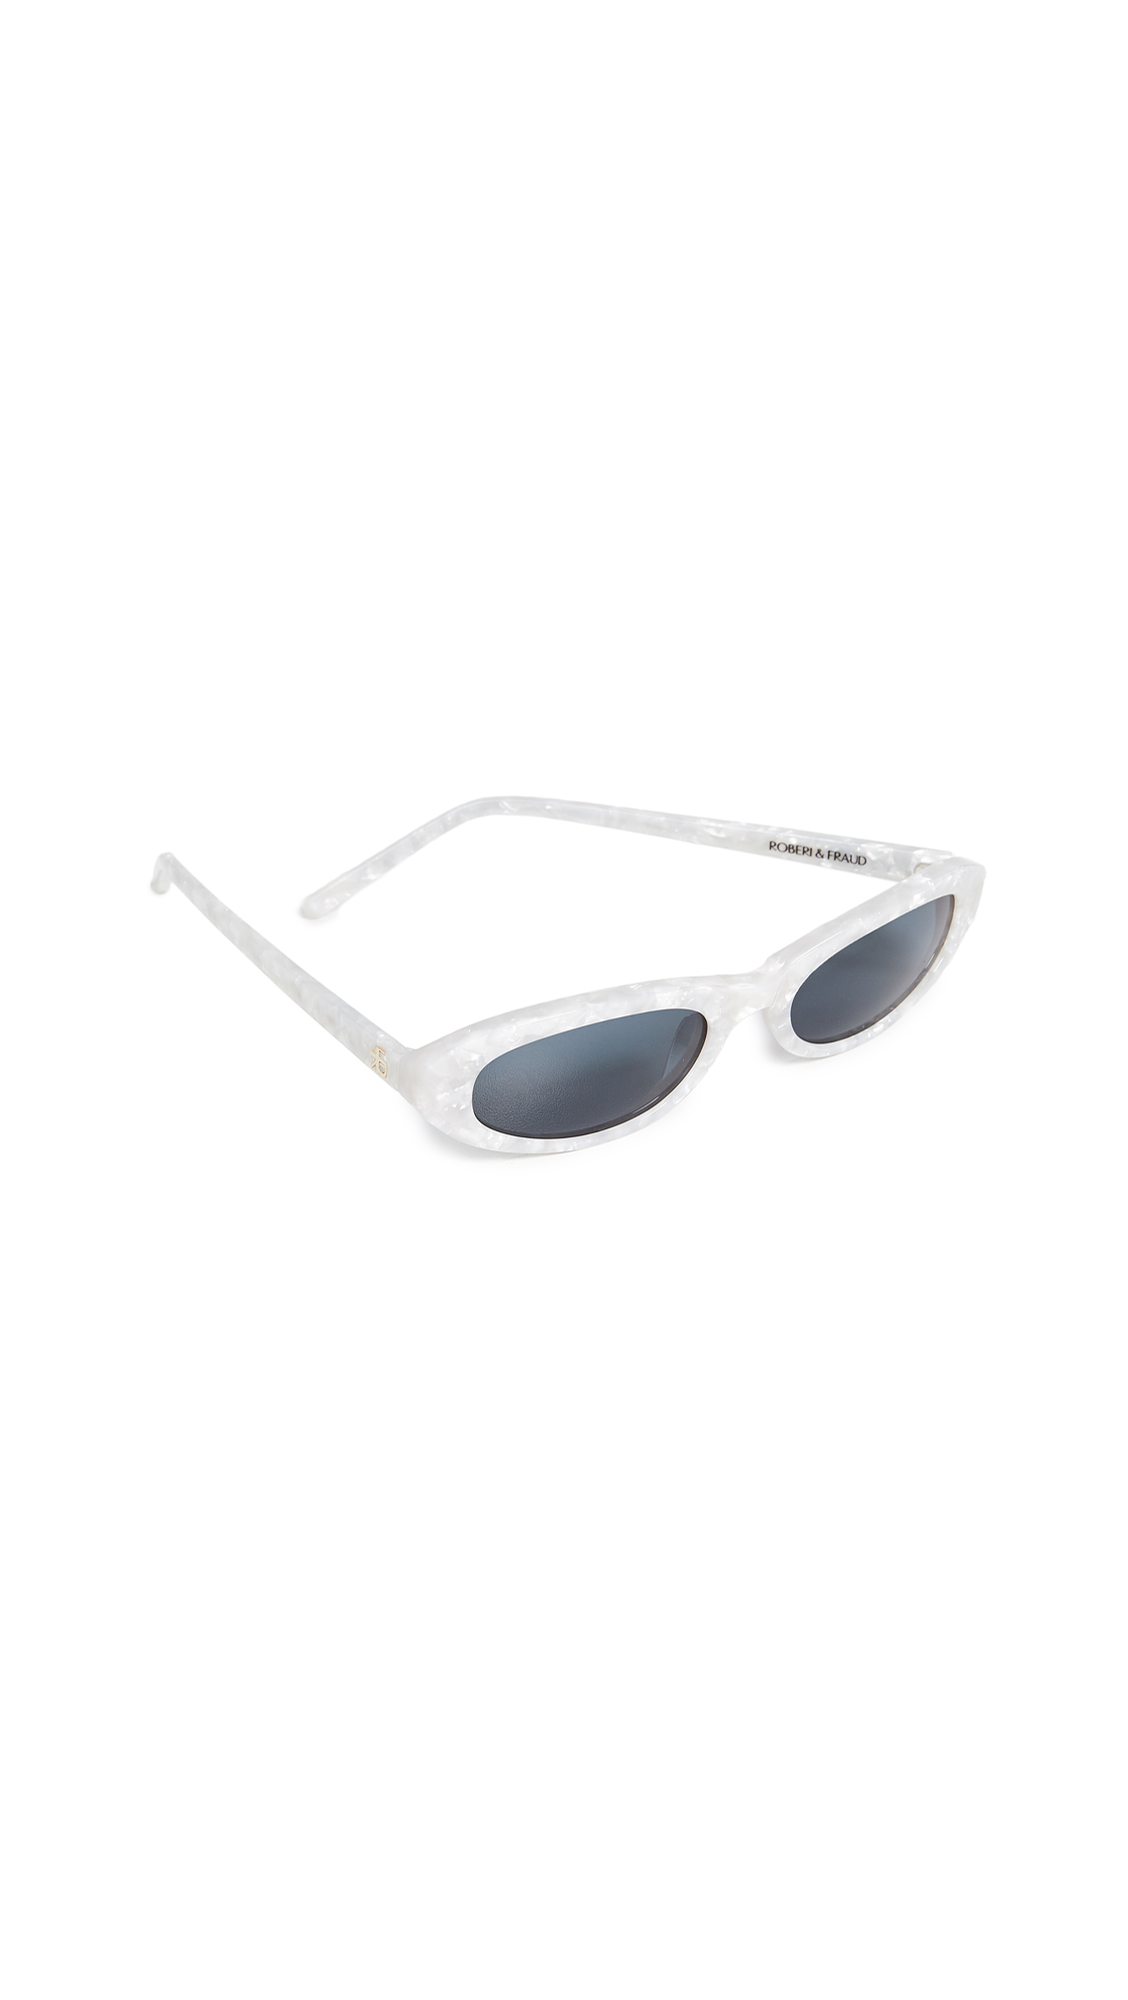 ROBERI & FRAUD Baby Betty Sunglasses in White Pearl